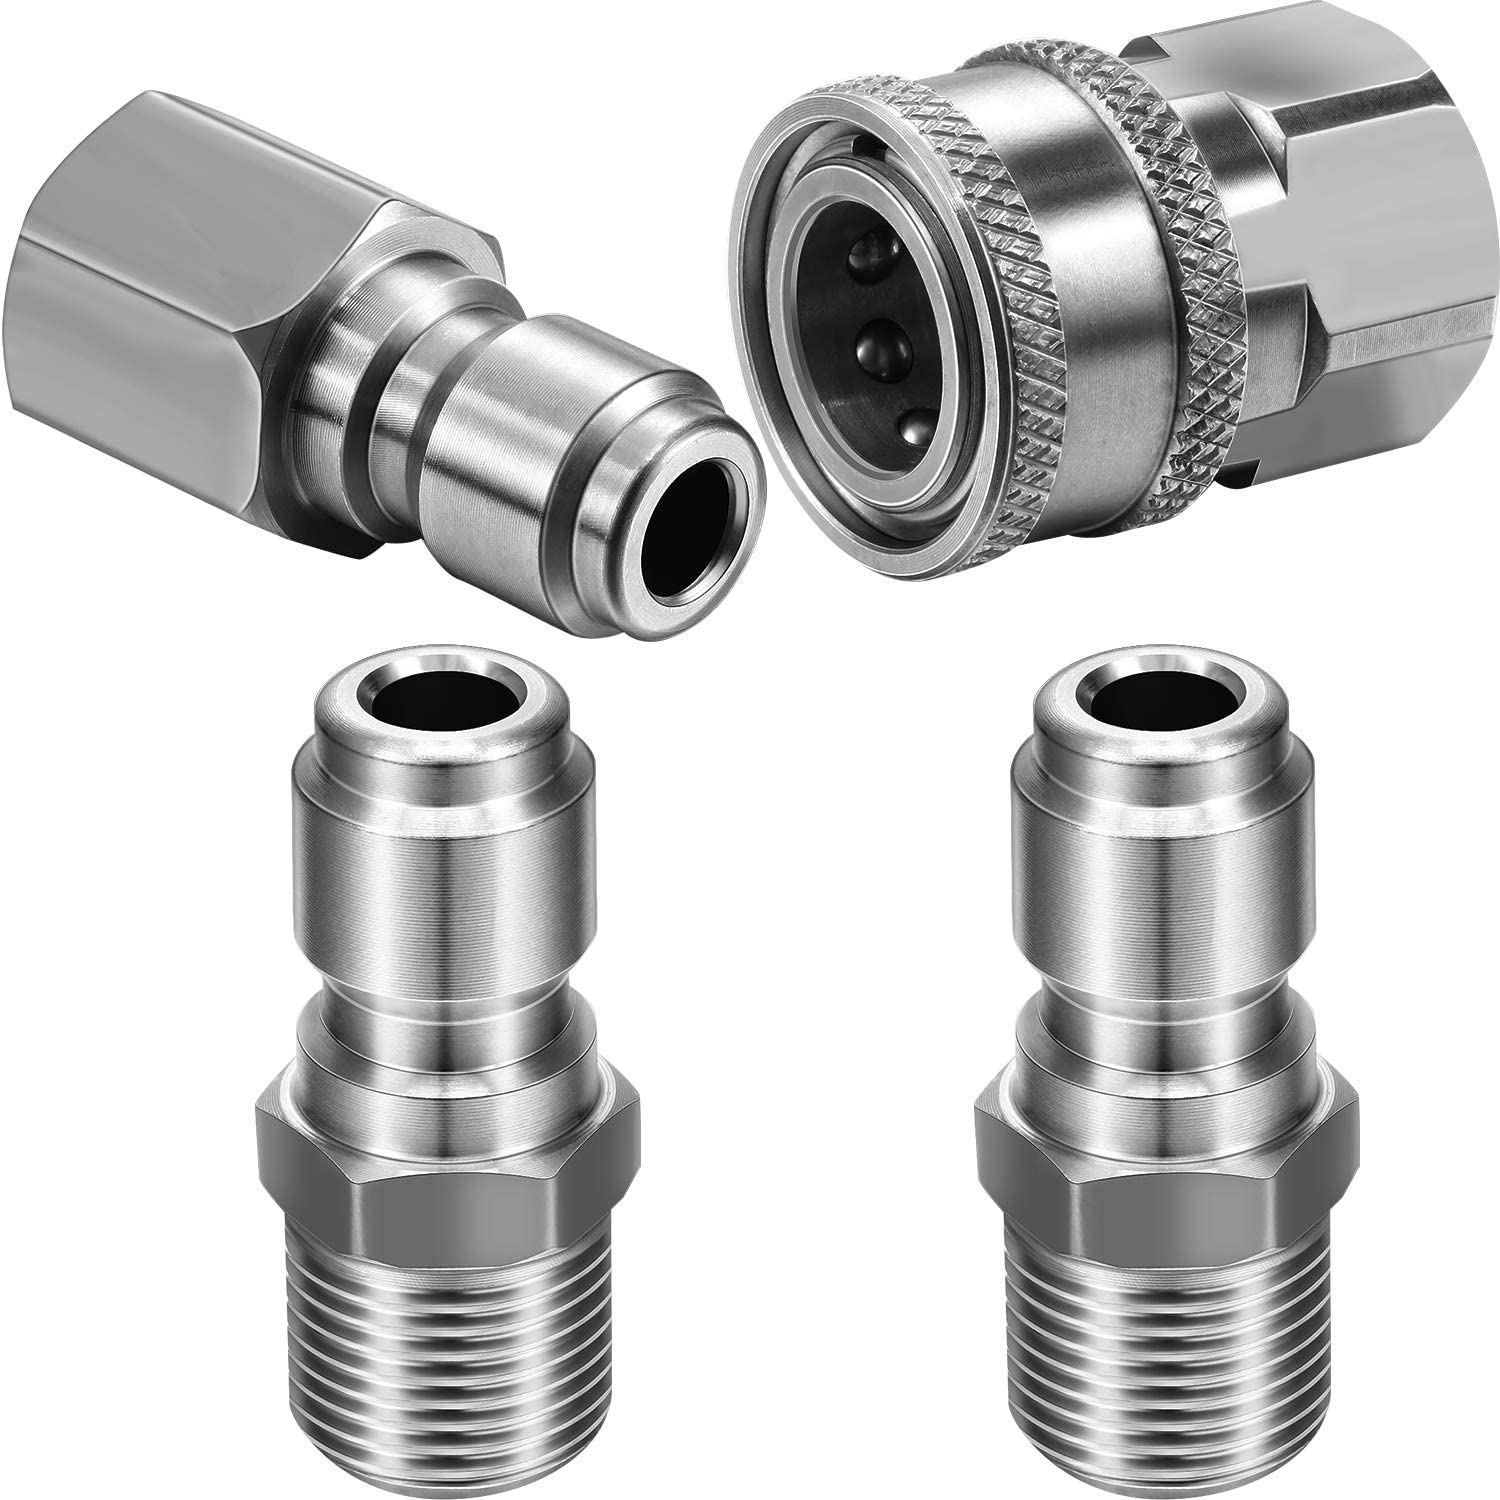 Hotop NPT 3/8 Inch Stainless Steel Male and Female Quick Connector Kit Pressure Washer Adapter Set and 2 Packs NPT 3/8 Inch Stainless Steel Quick Connector Plug Male Nipples